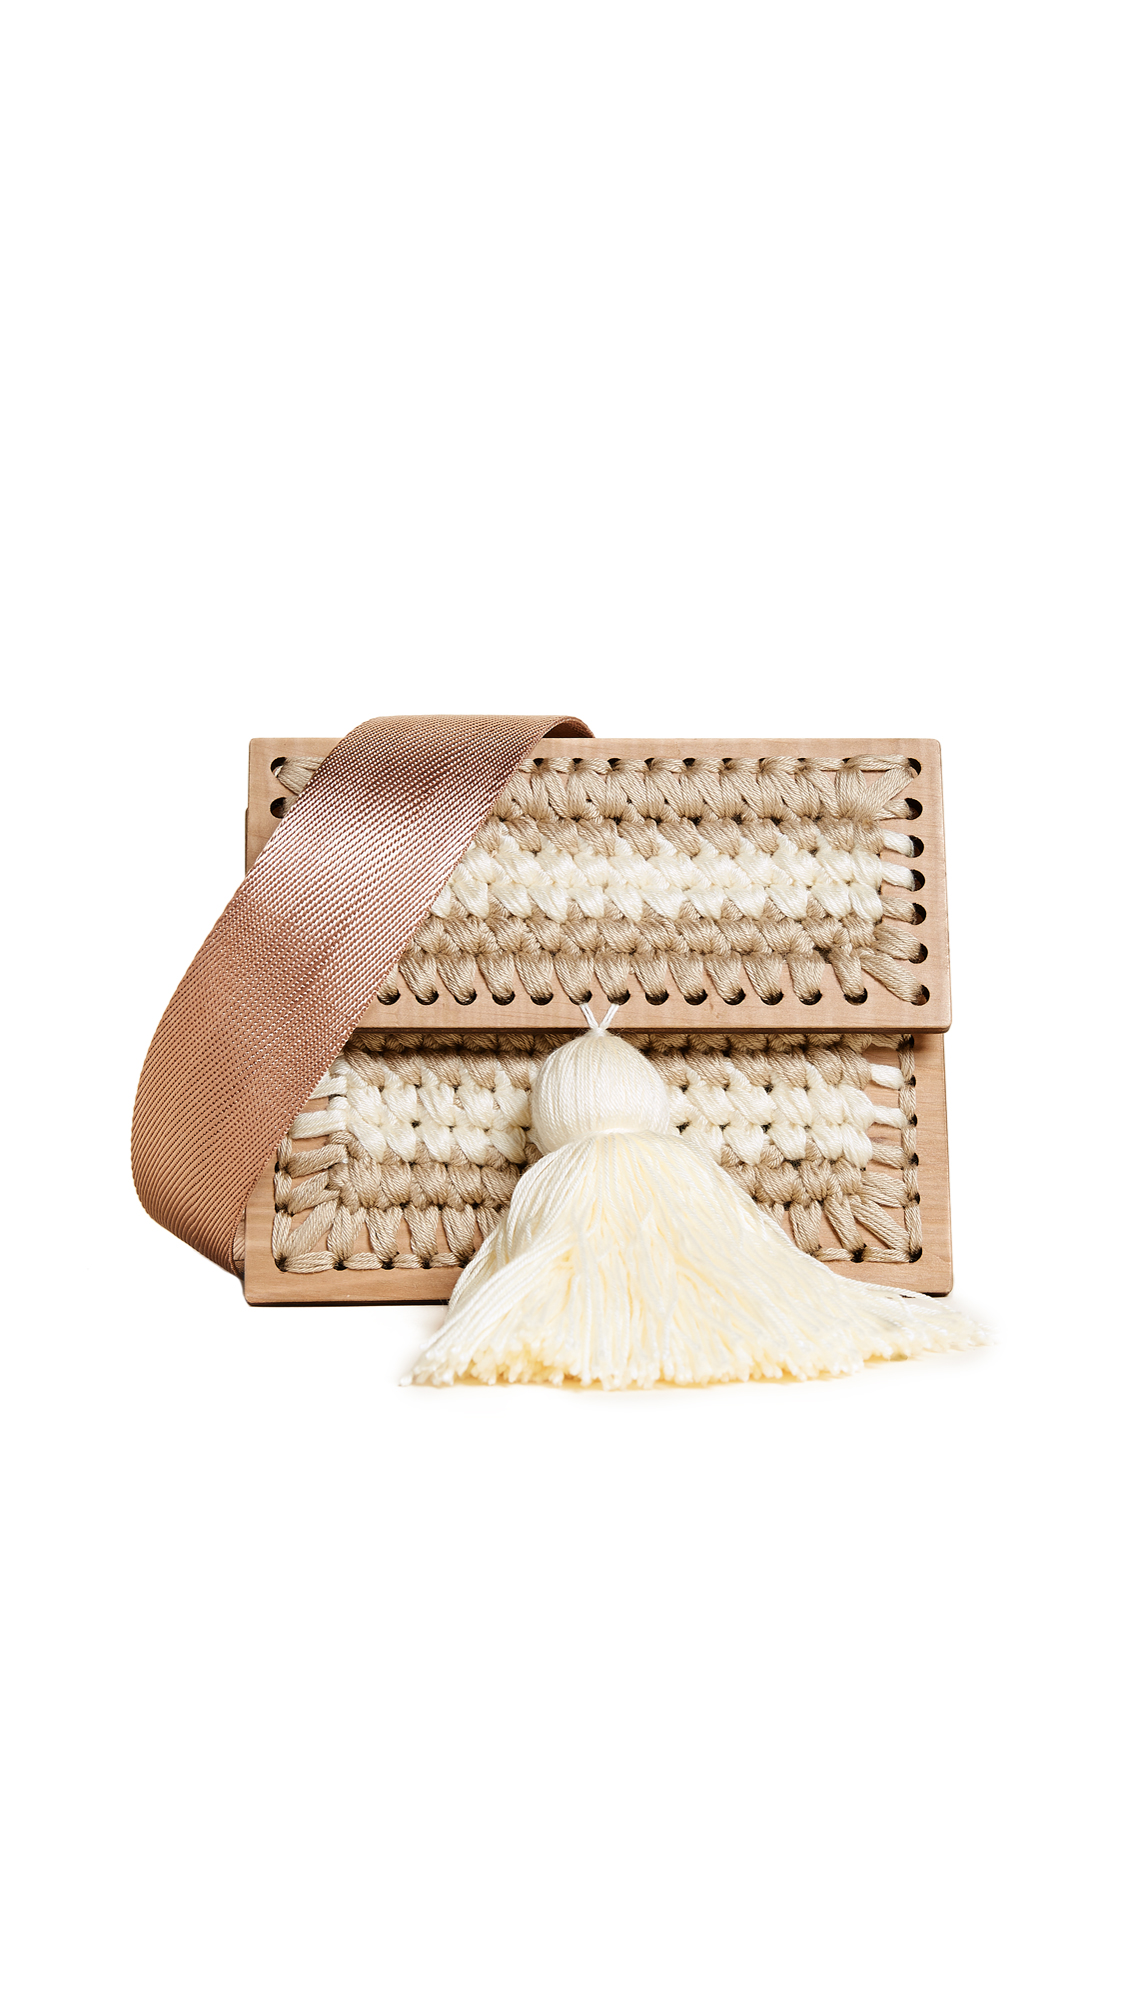 0711 Sergei Copacabana Clutch - Beige/Cream